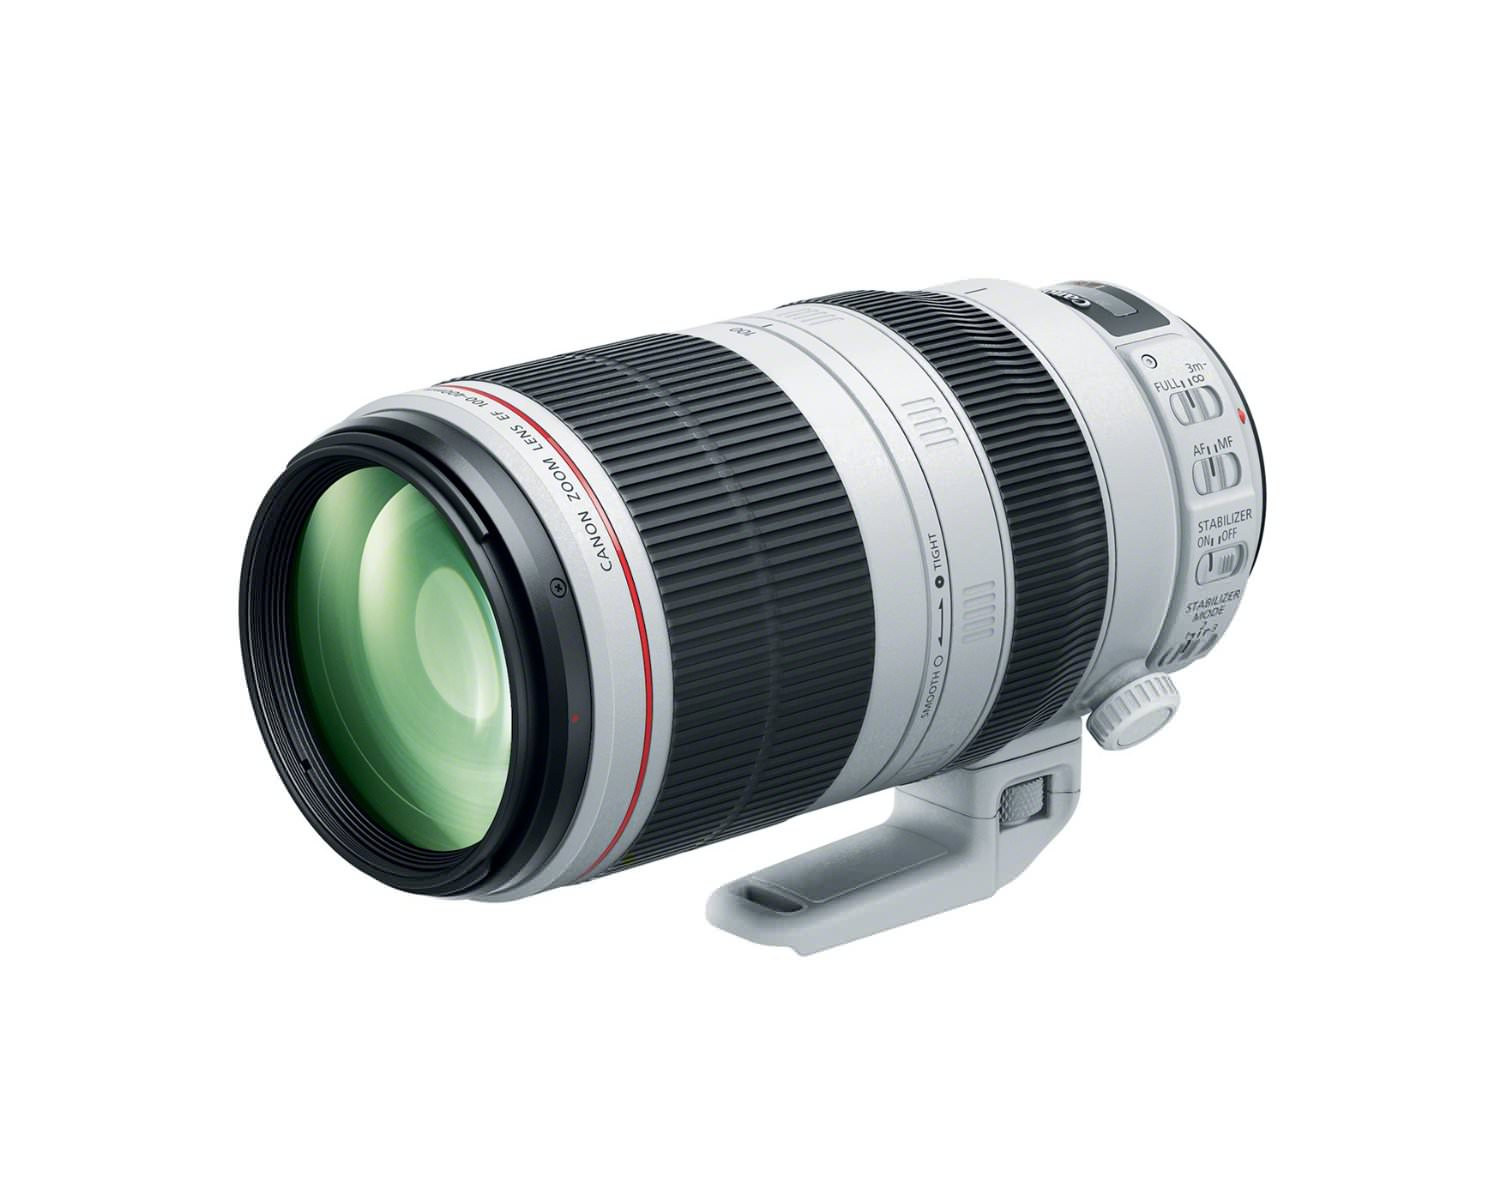 Canon 100 400mm f4.5 5.6L IS II USM image